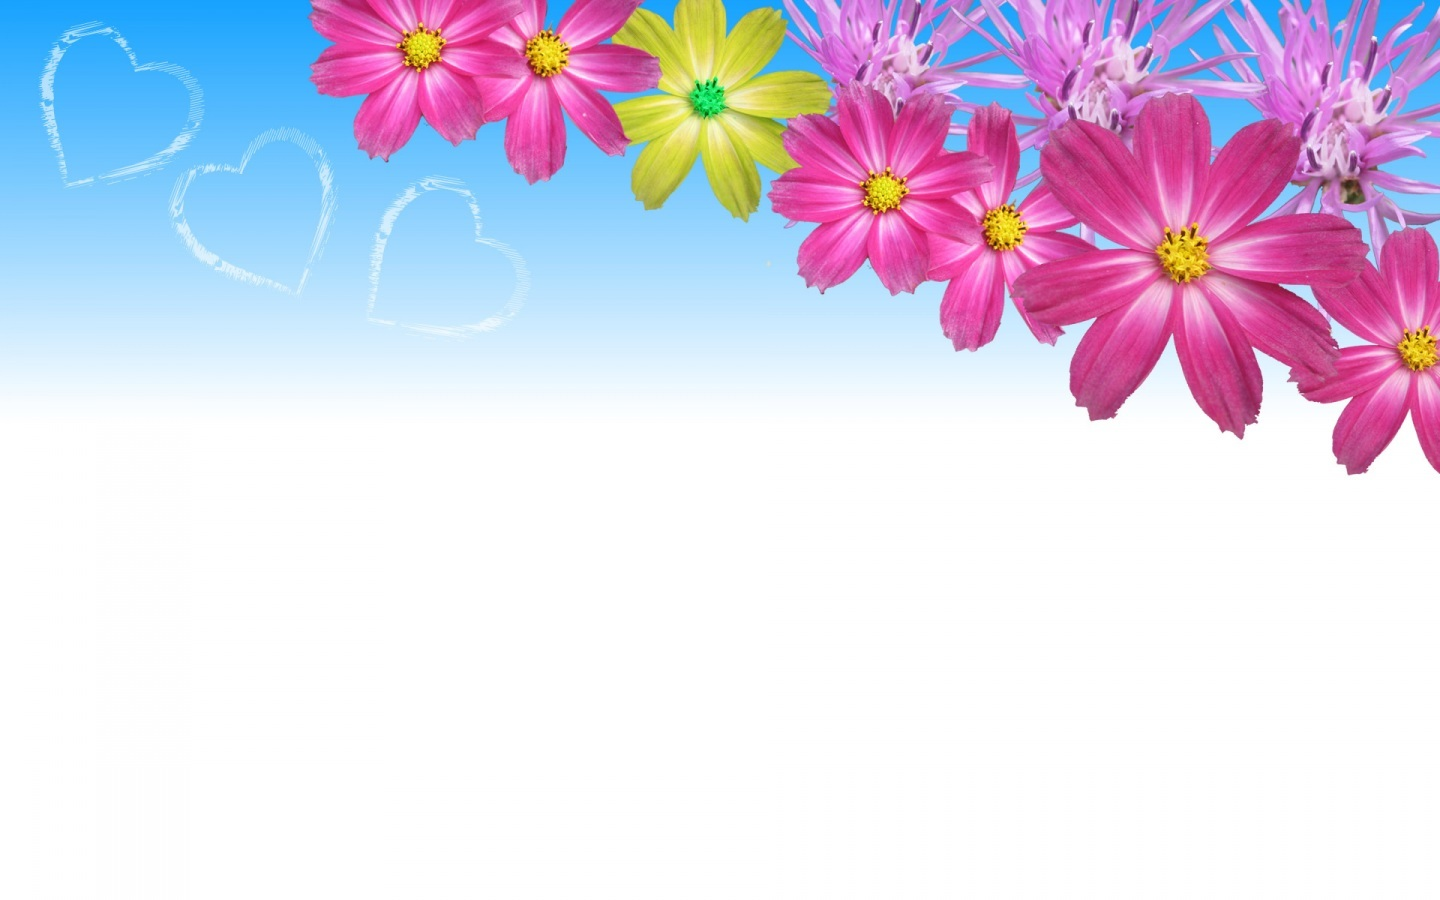 Flower background images free download clip library stock Free Flower Wallpaper Backgrounds clip library stock